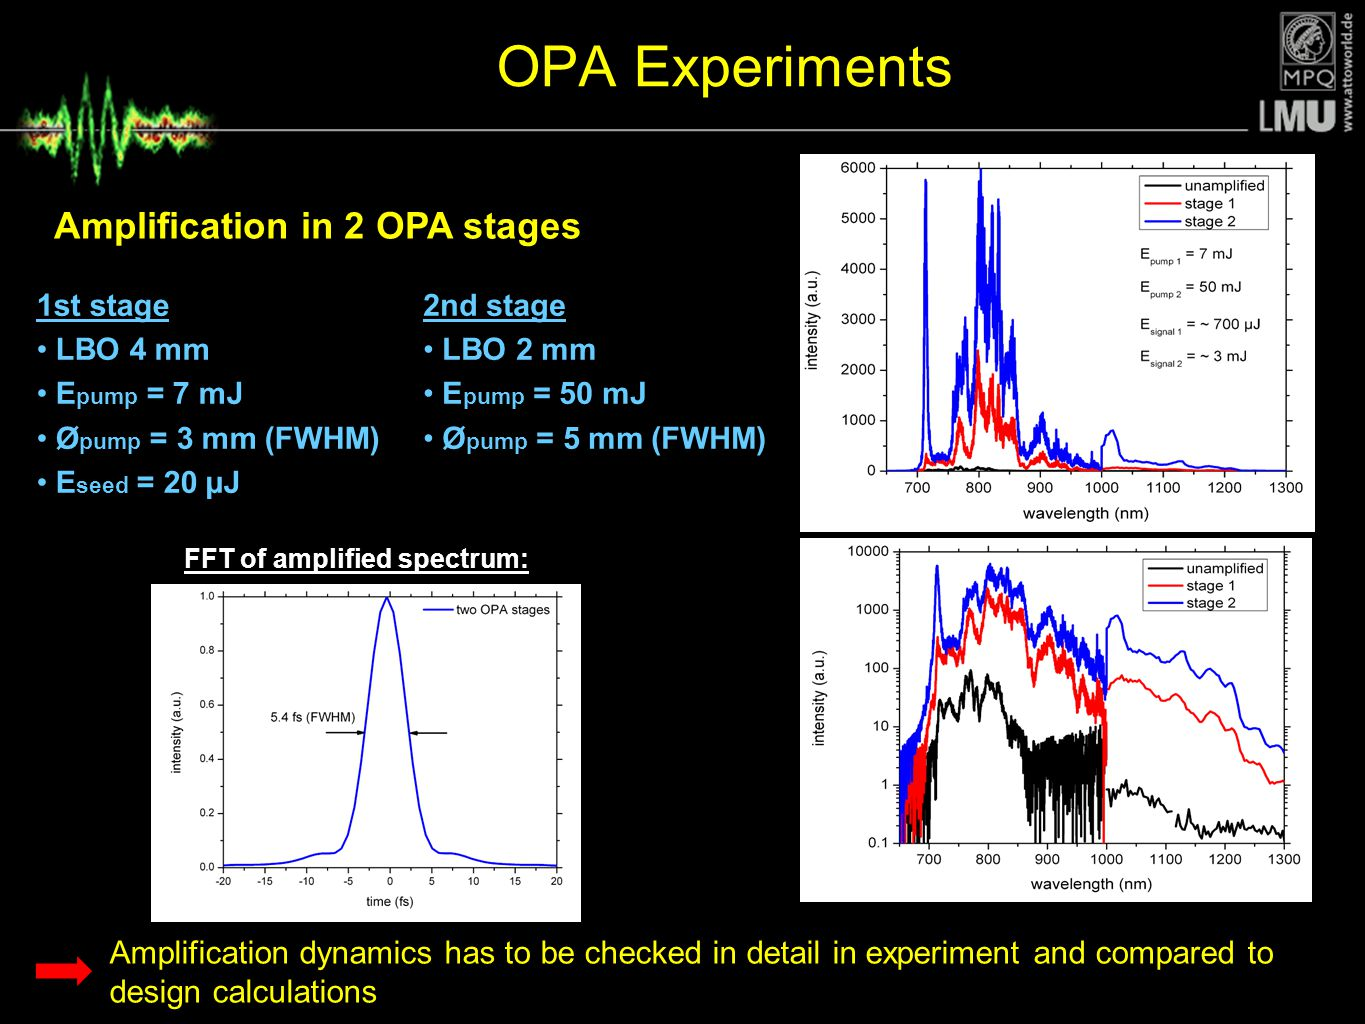 Amplification in 2 OPA stages FFT of amplified spectrum: